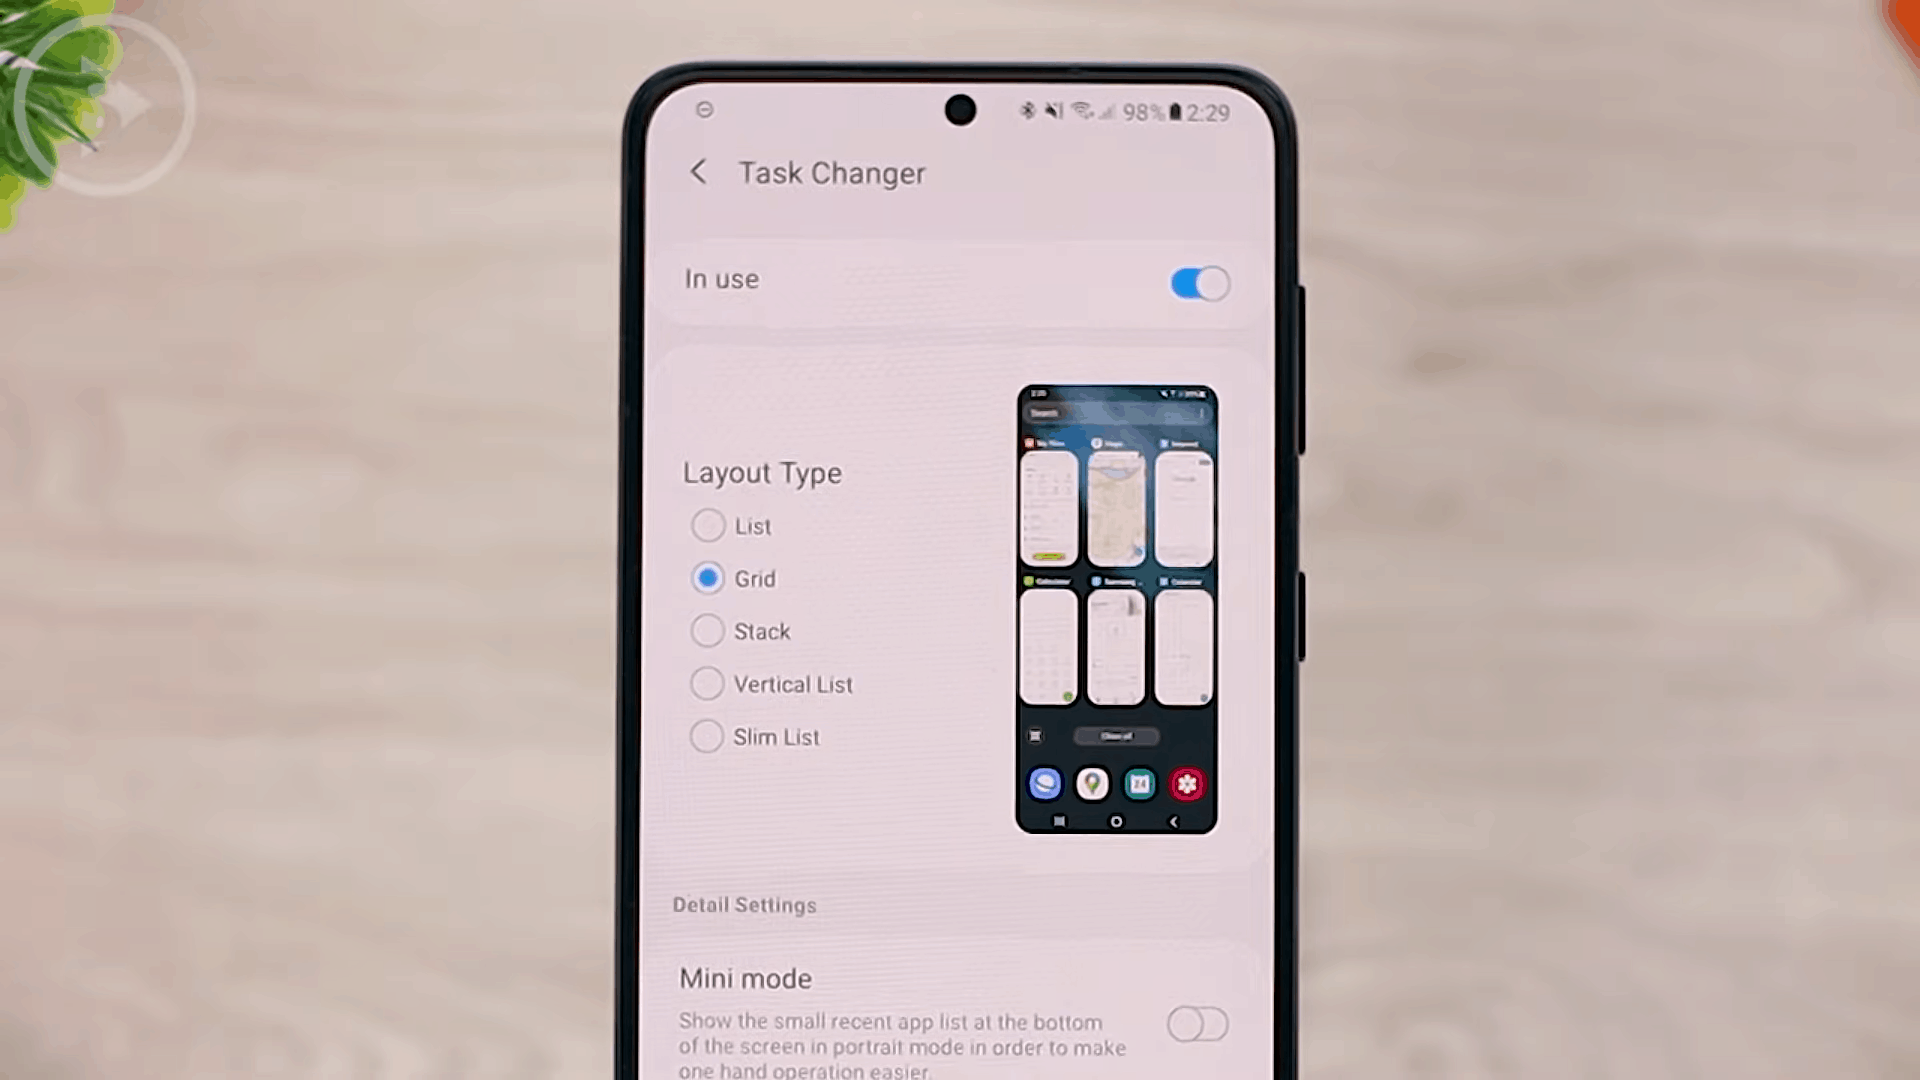 New Task Changer Animation and Layout Types - 8 COOL Features in the LATEST Good Lock Update April 2021